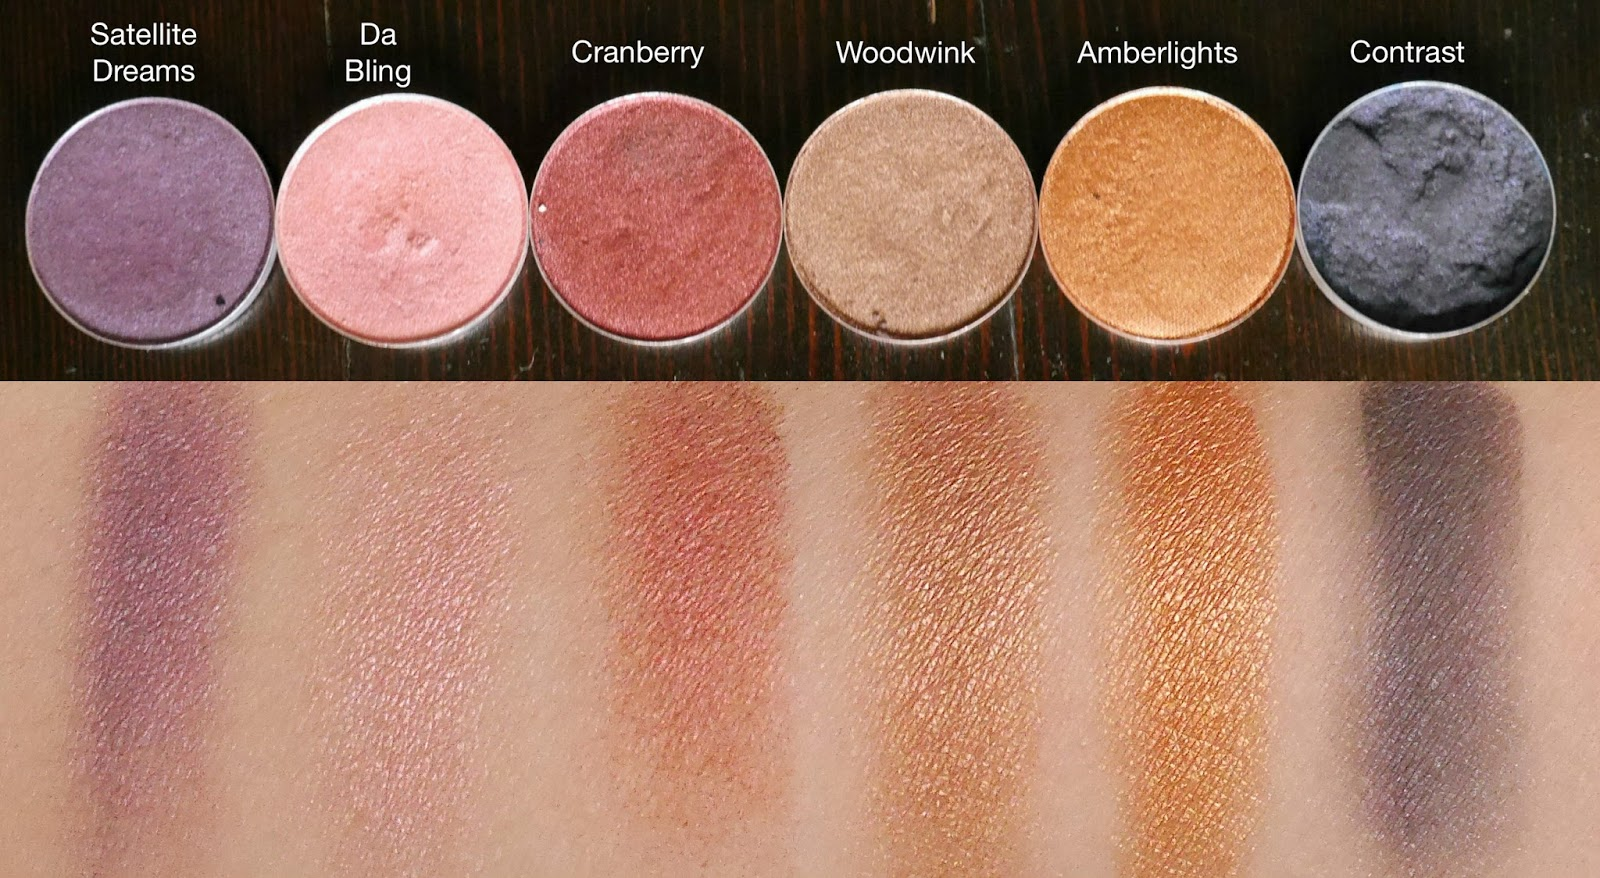 MAC Satellite Dreams, Da Bling, Cranberry, Woodwink, Amberlights, And  Contrast Swatches